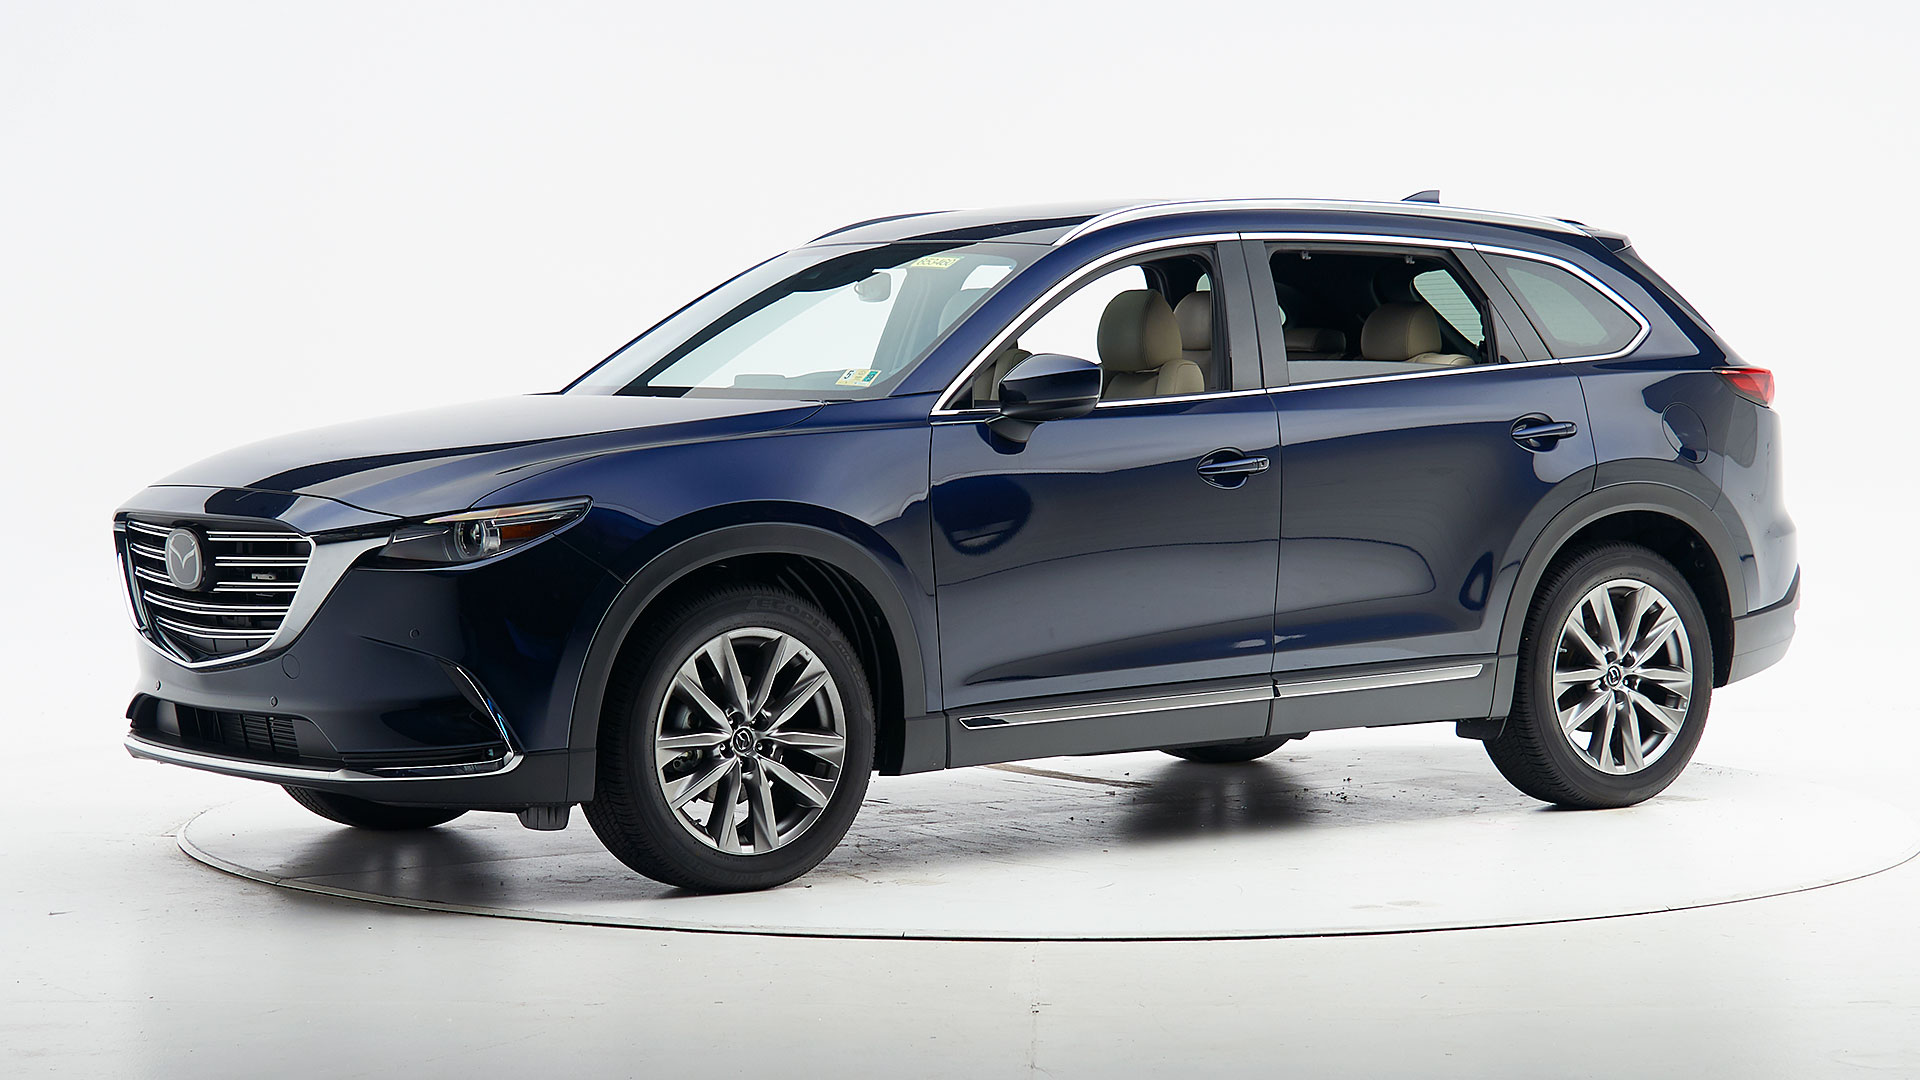 2018 Mazda CX-9 4-door SUV